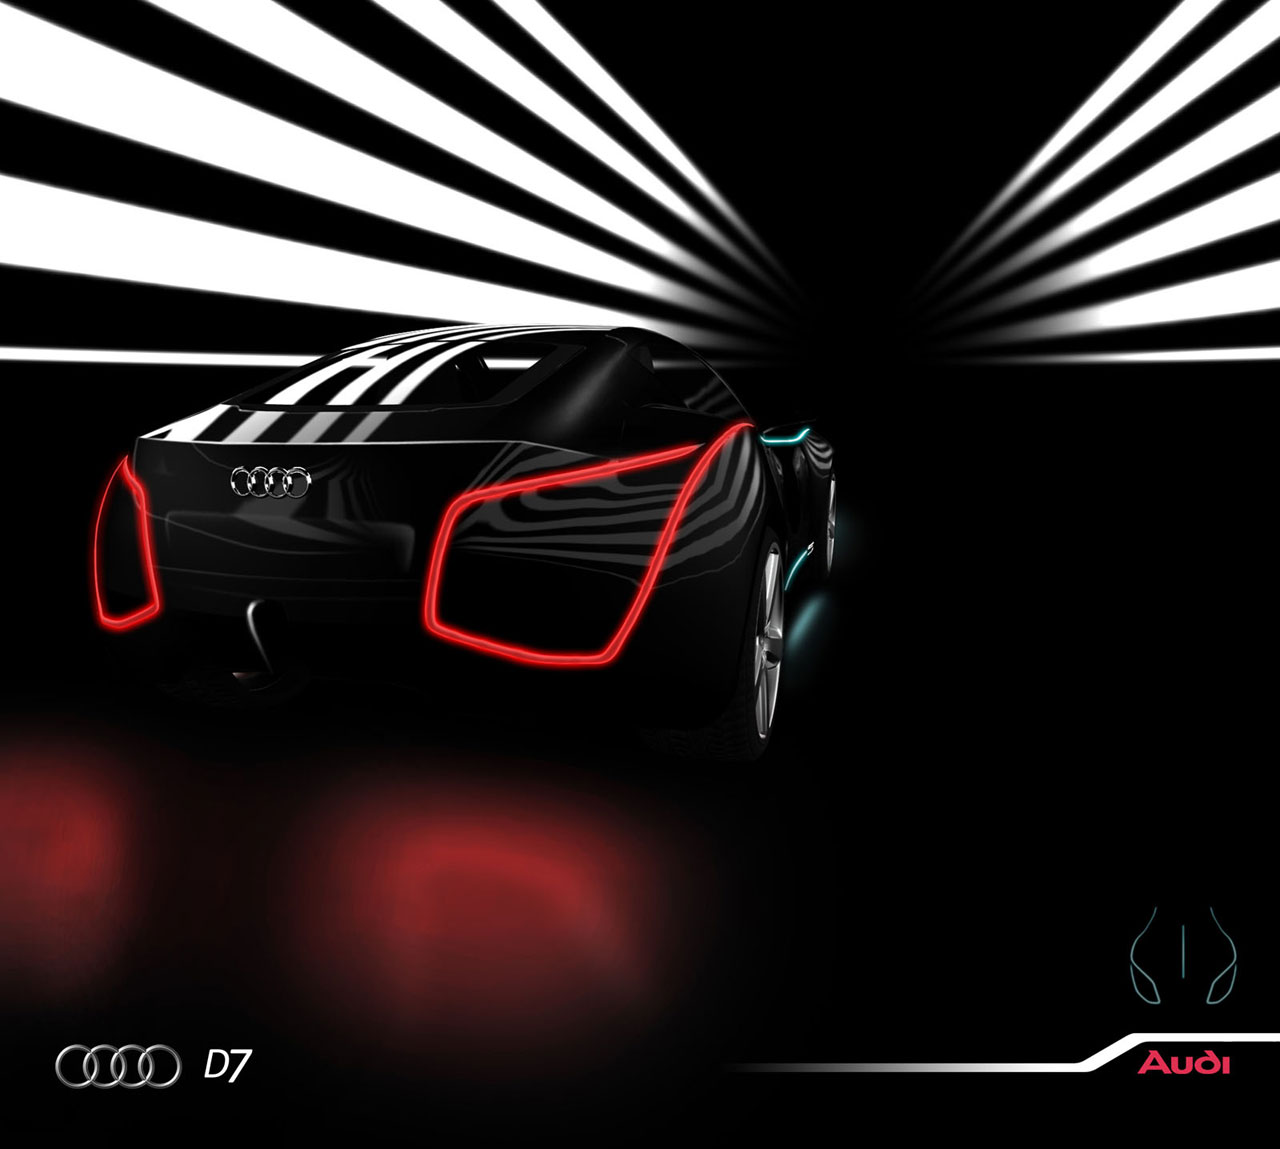 Audi D7 Concept. Source. Posted by Daniel Proctor at 12:42